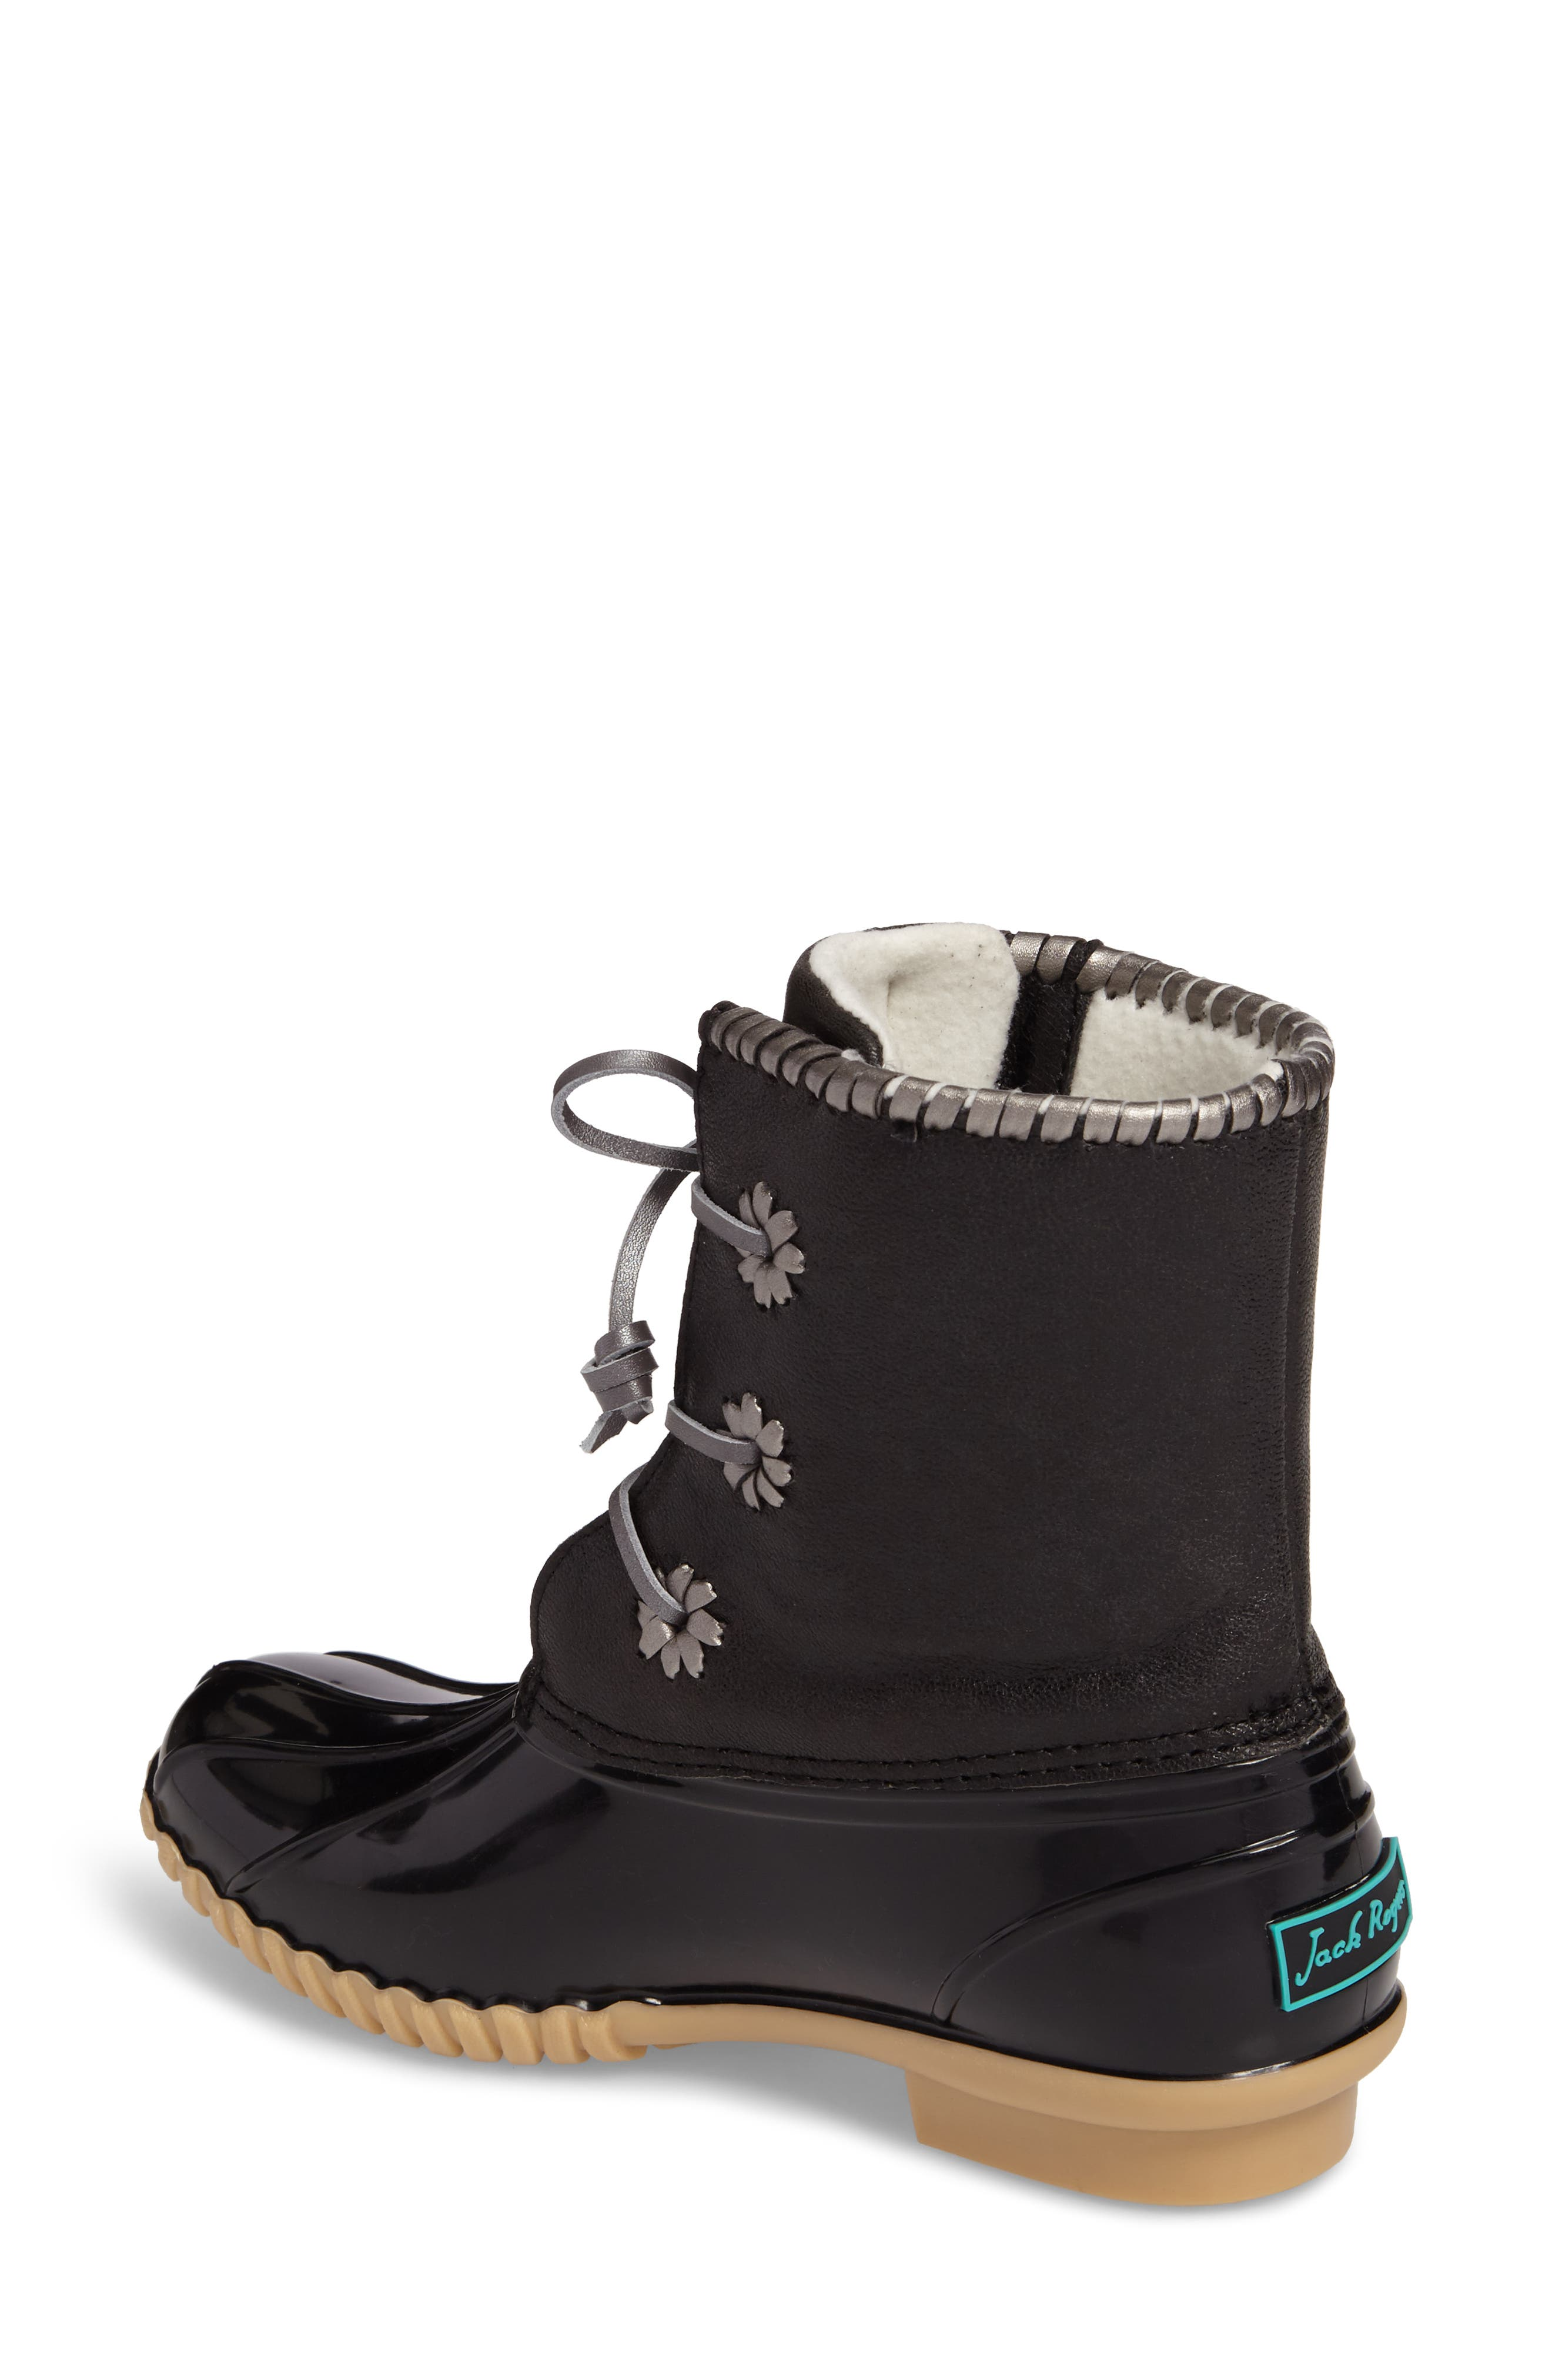 'Chloe' Rain Boot,                             Alternate thumbnail 2, color,                             003